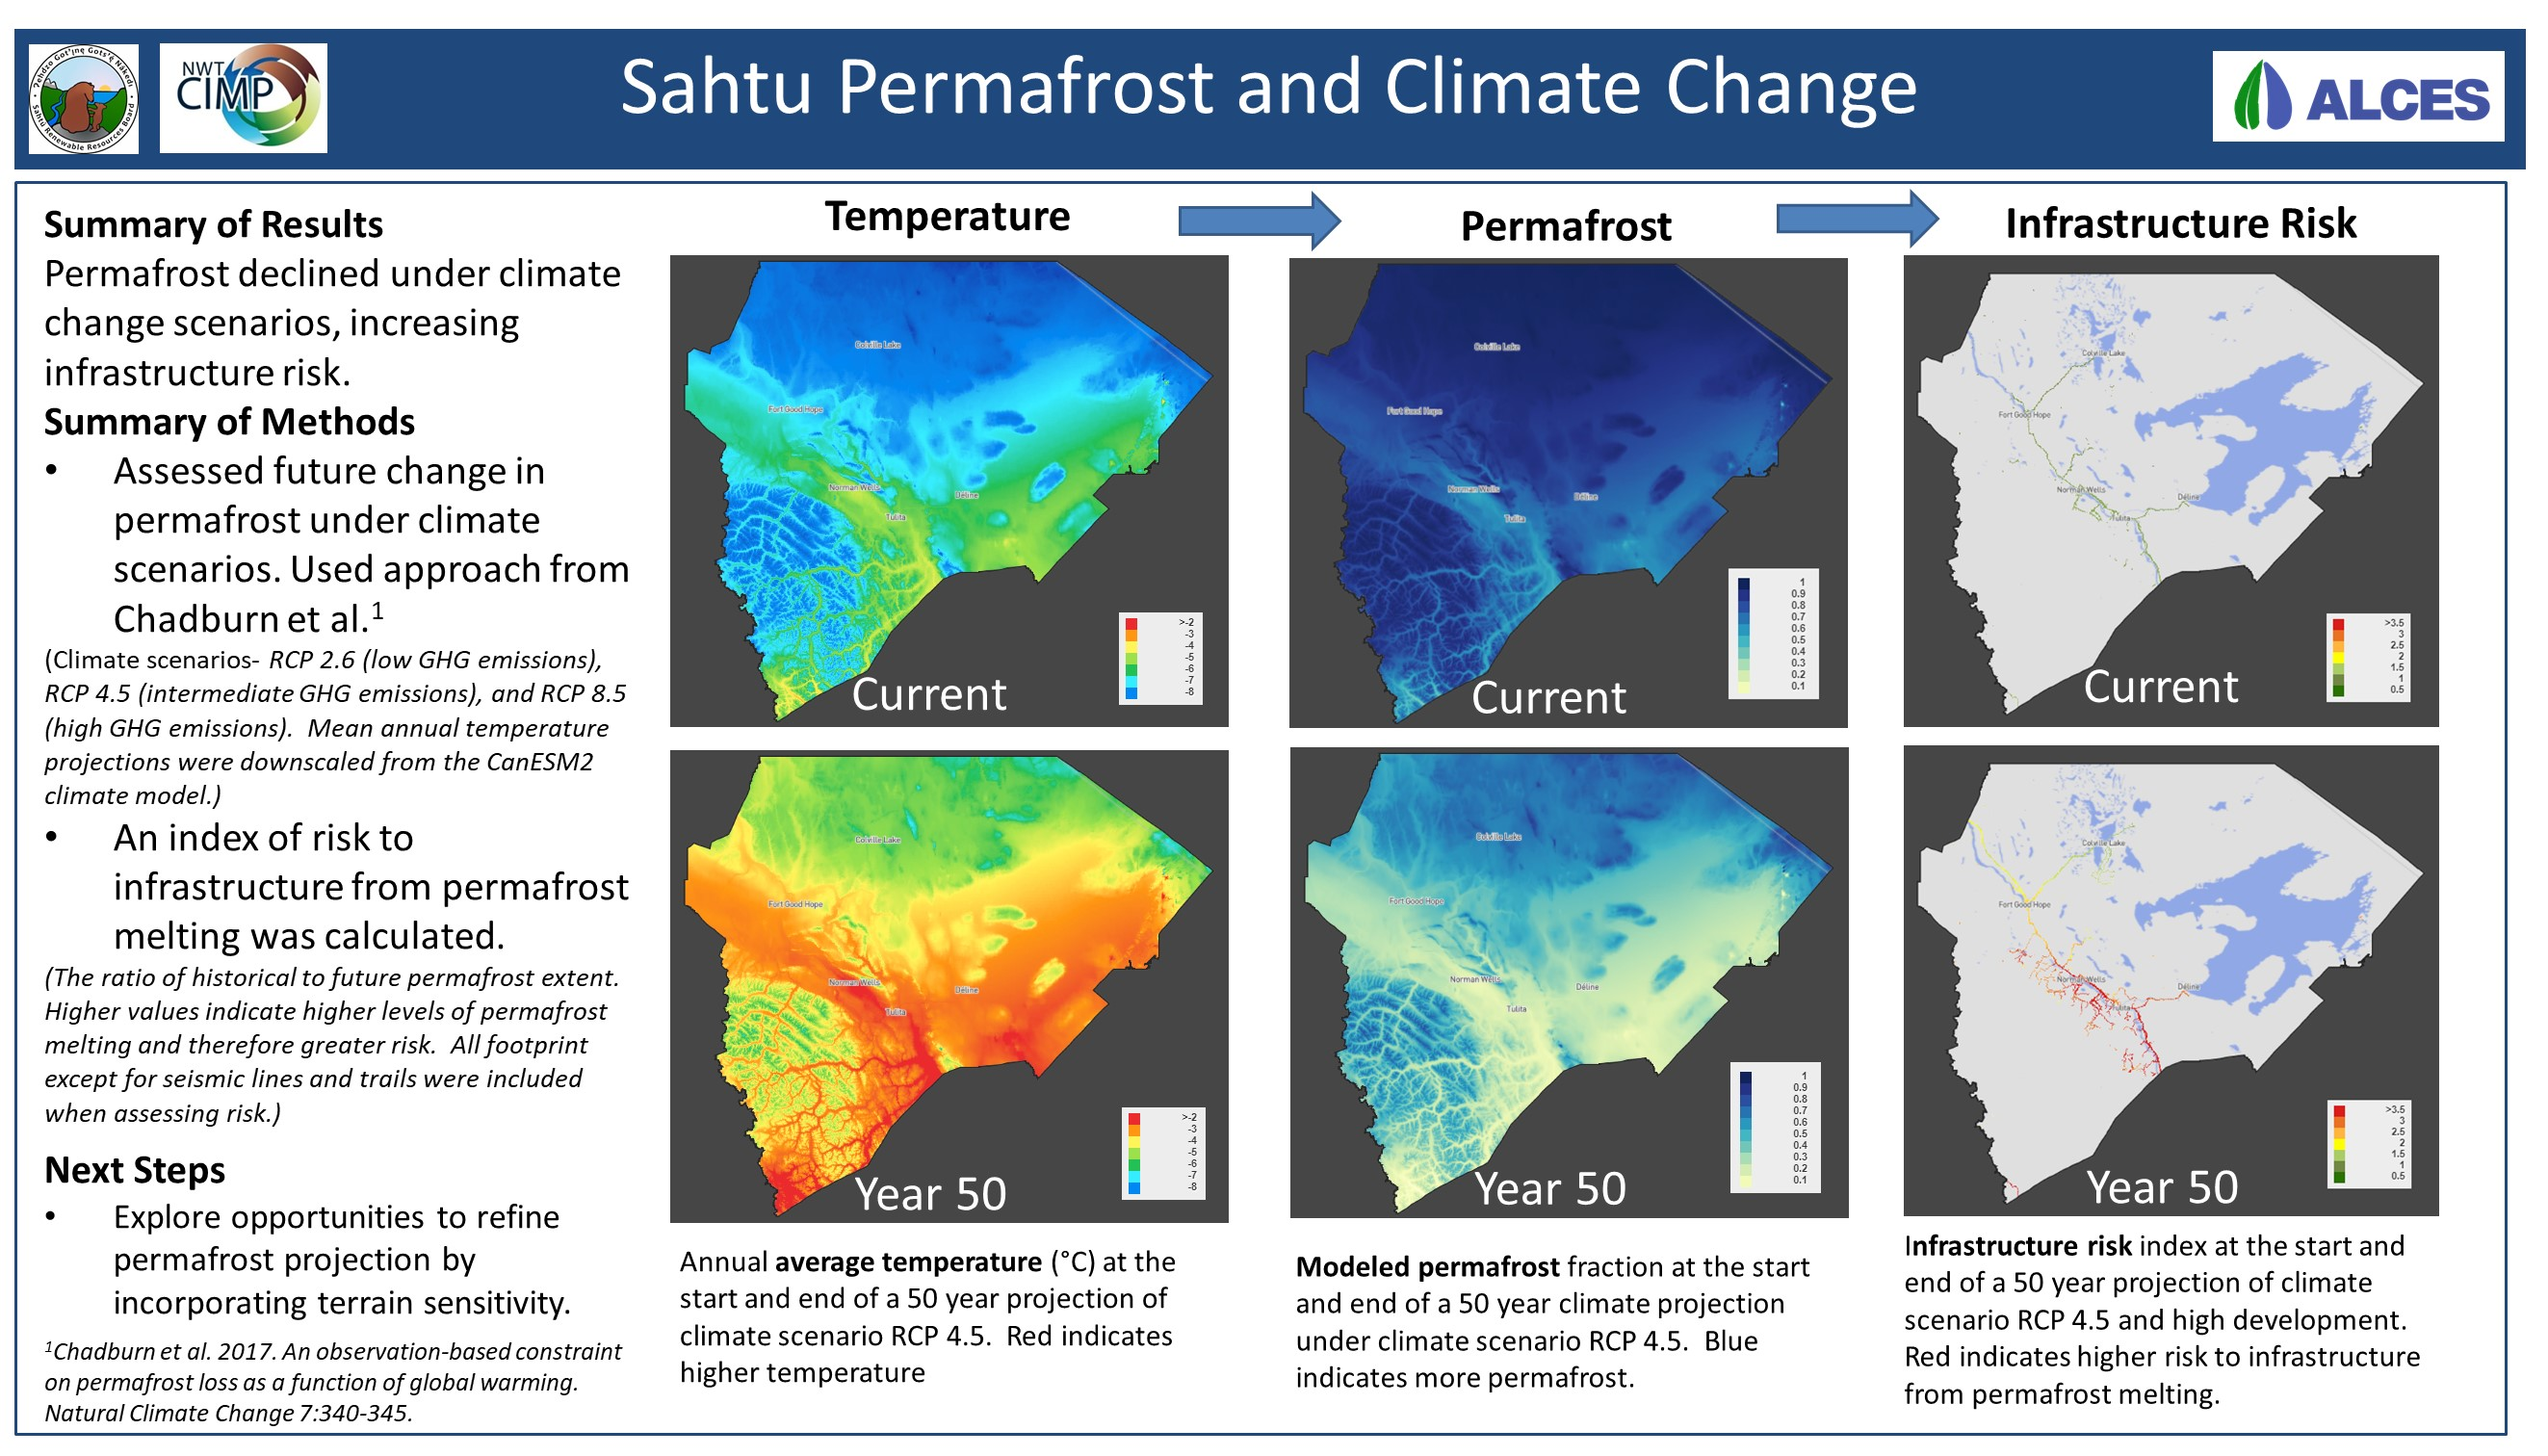 Sahtu Permafrost and Climate Change